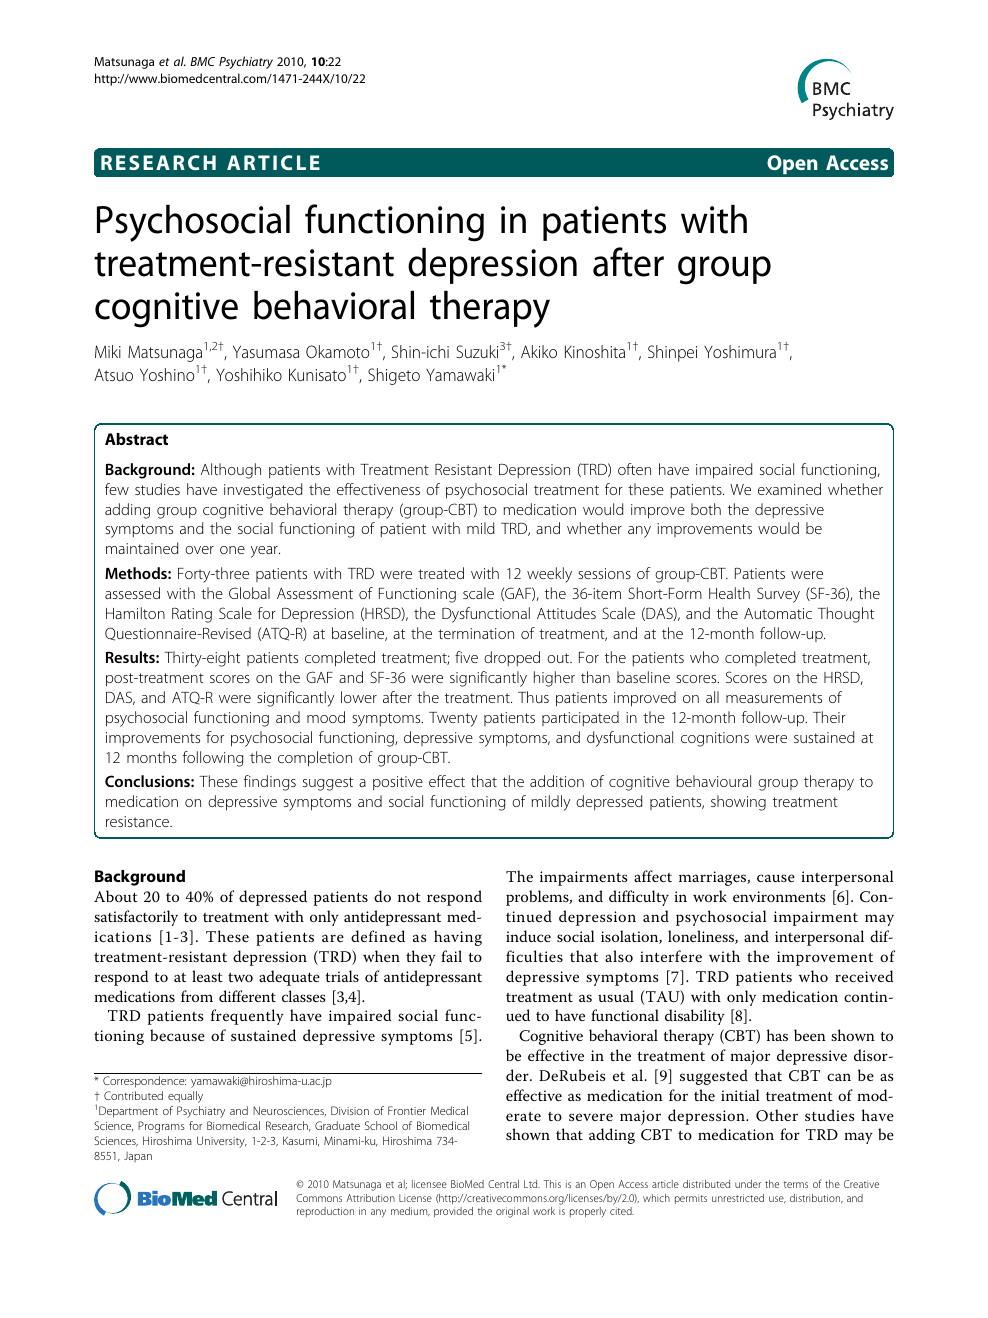 Psychosocial functioning in patients with treatment